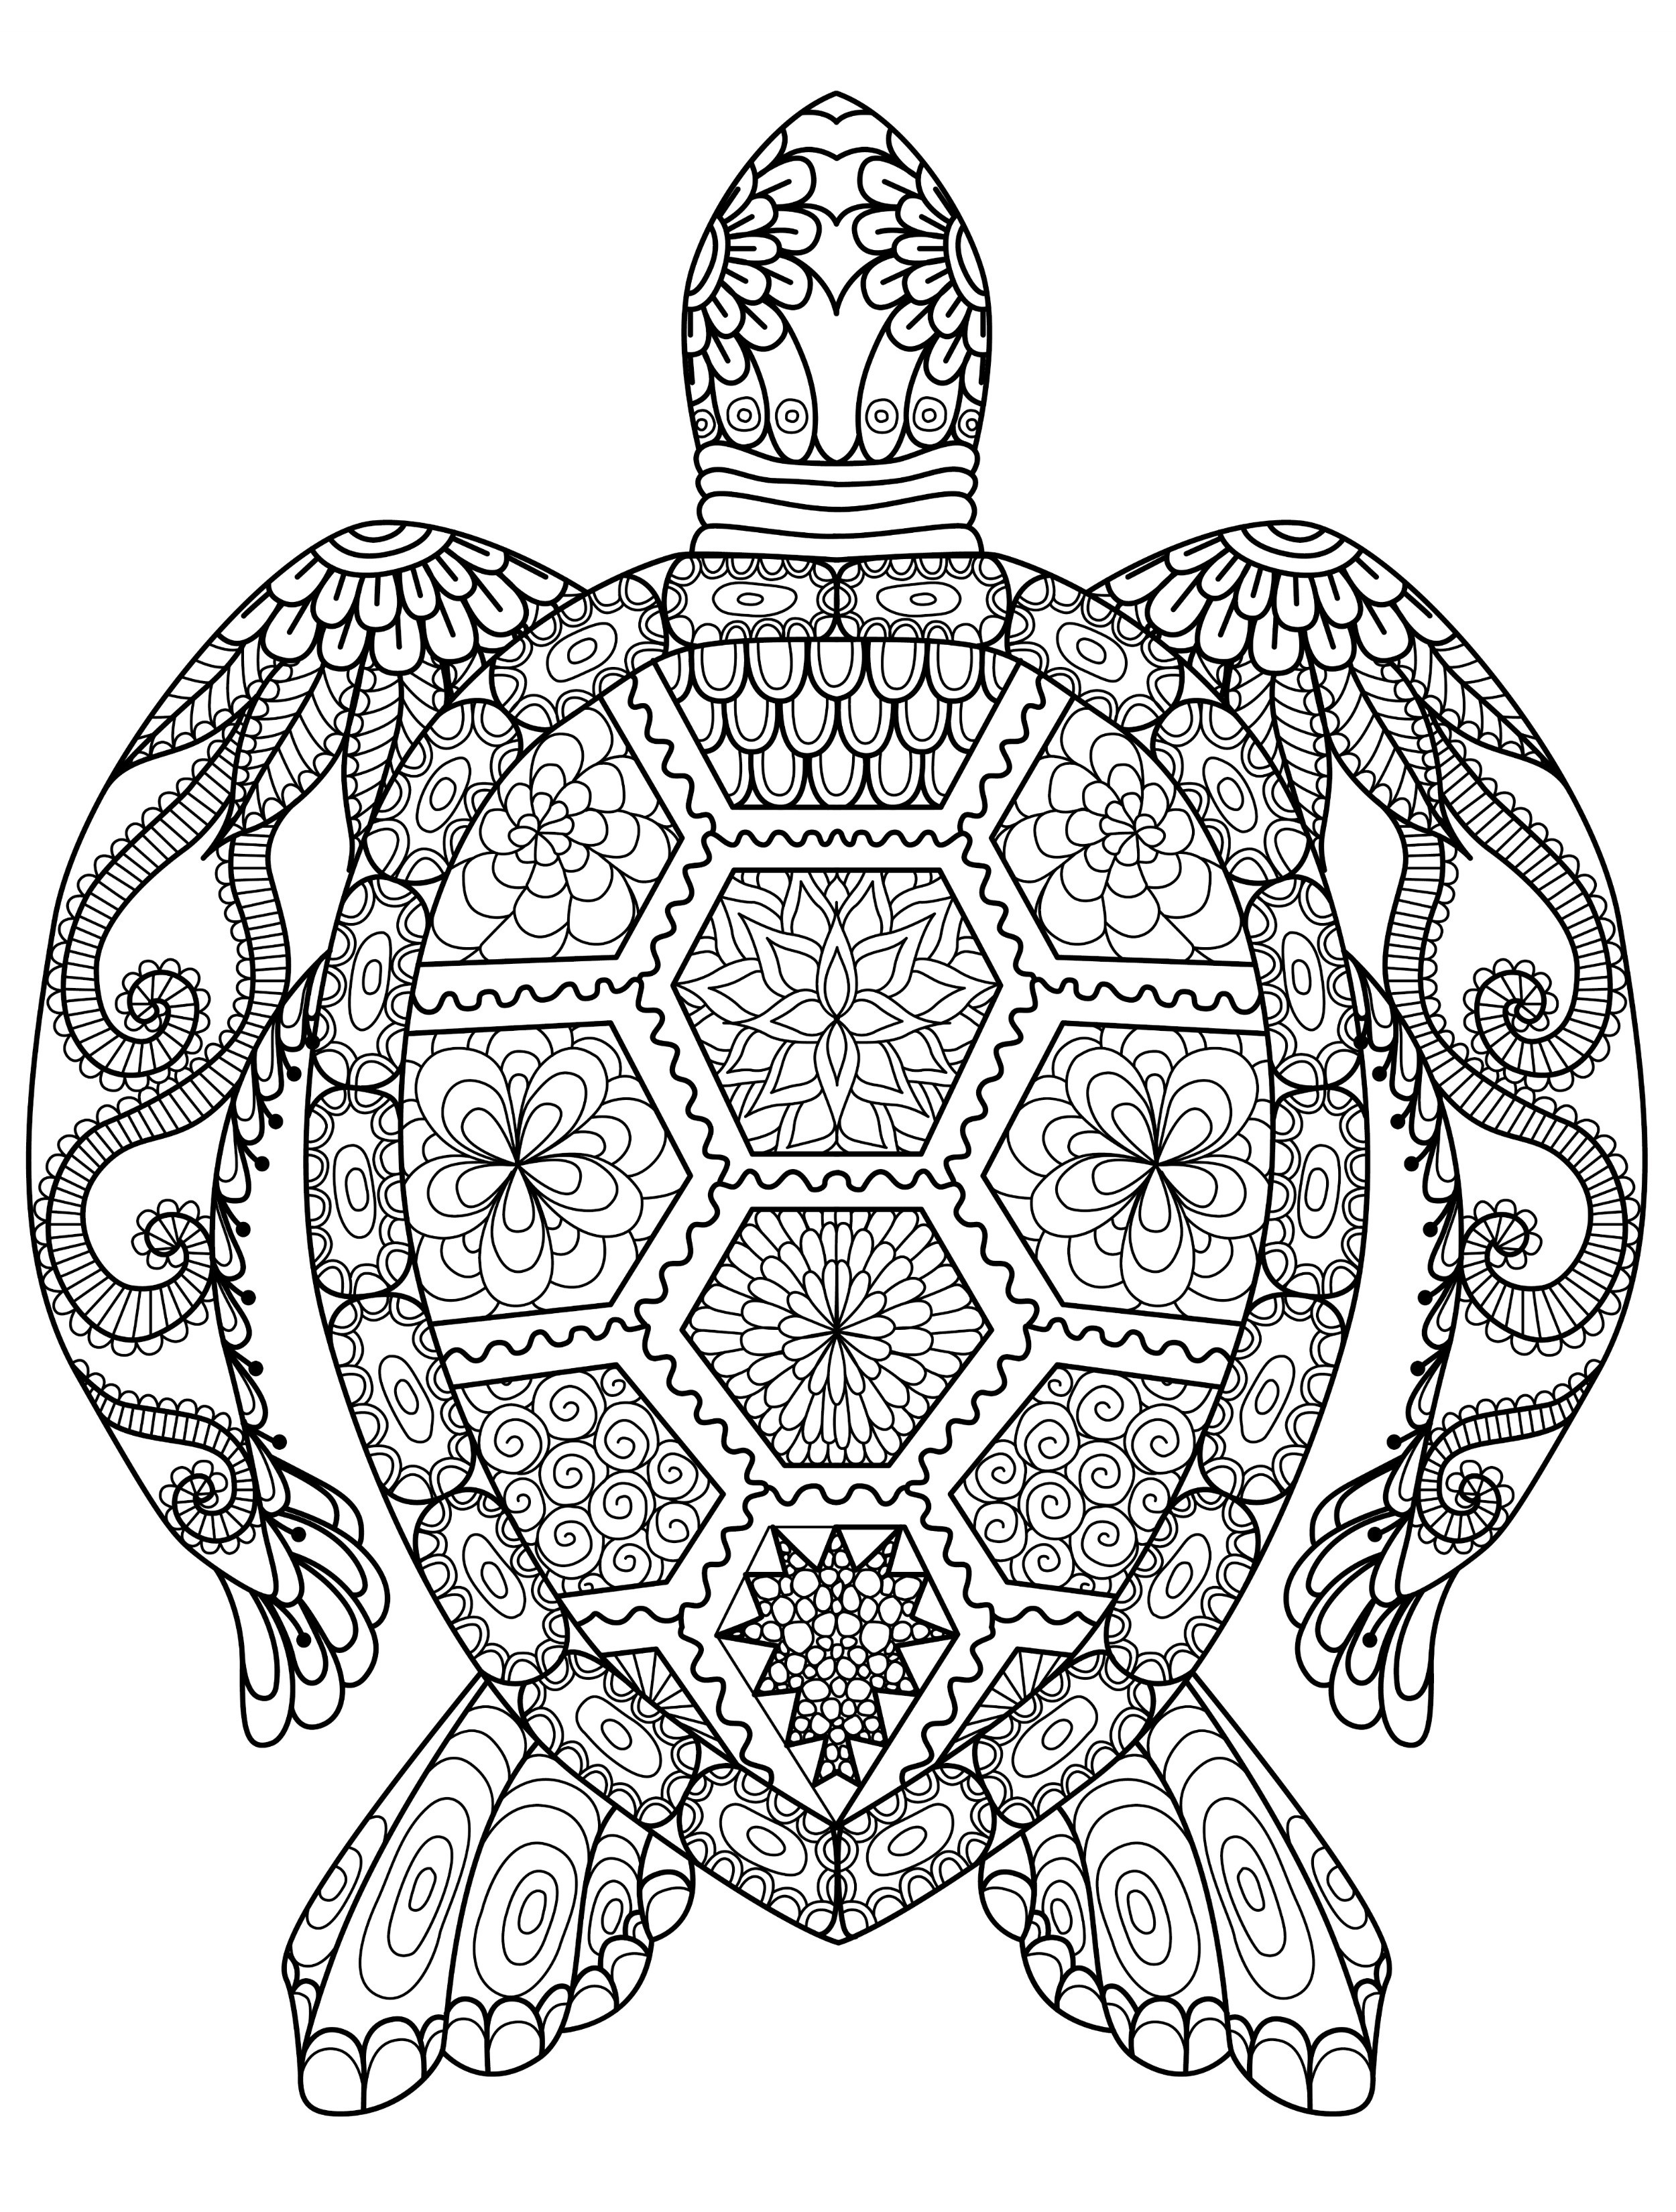 animal coloring pages for kids coloring lab pages kids animal for coloring